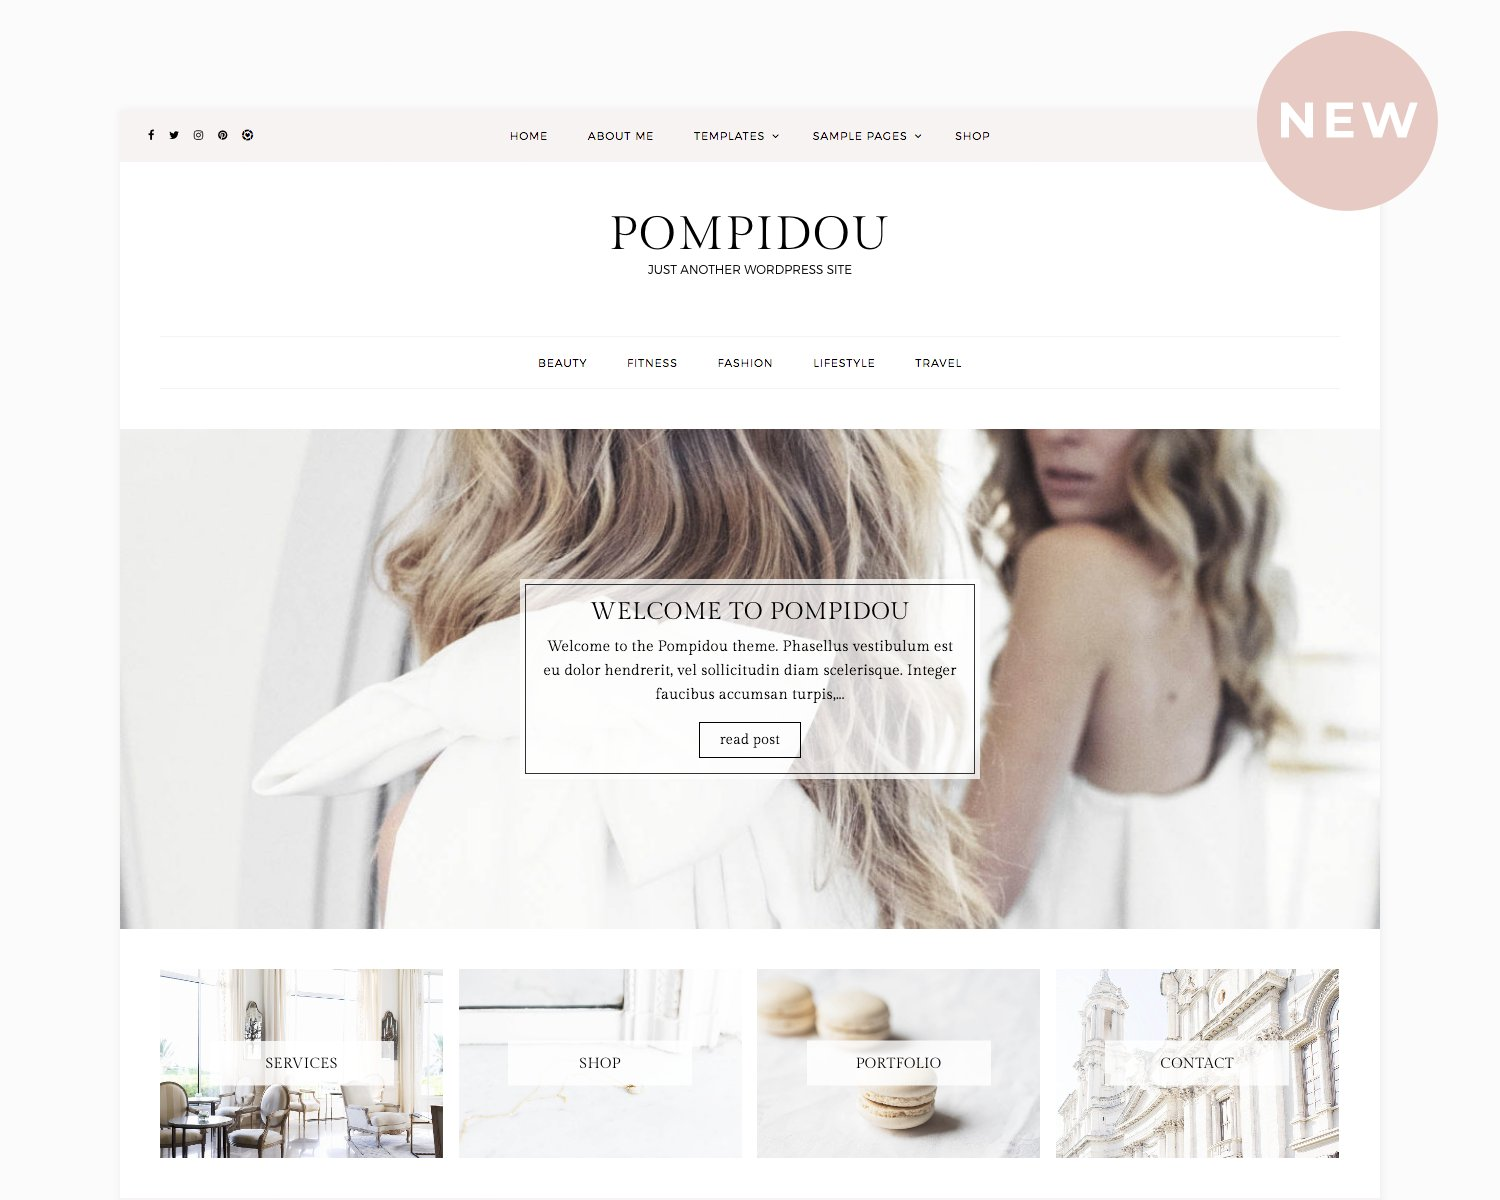 THE BEST WORDPRESS THEMES FOR BLOGGING